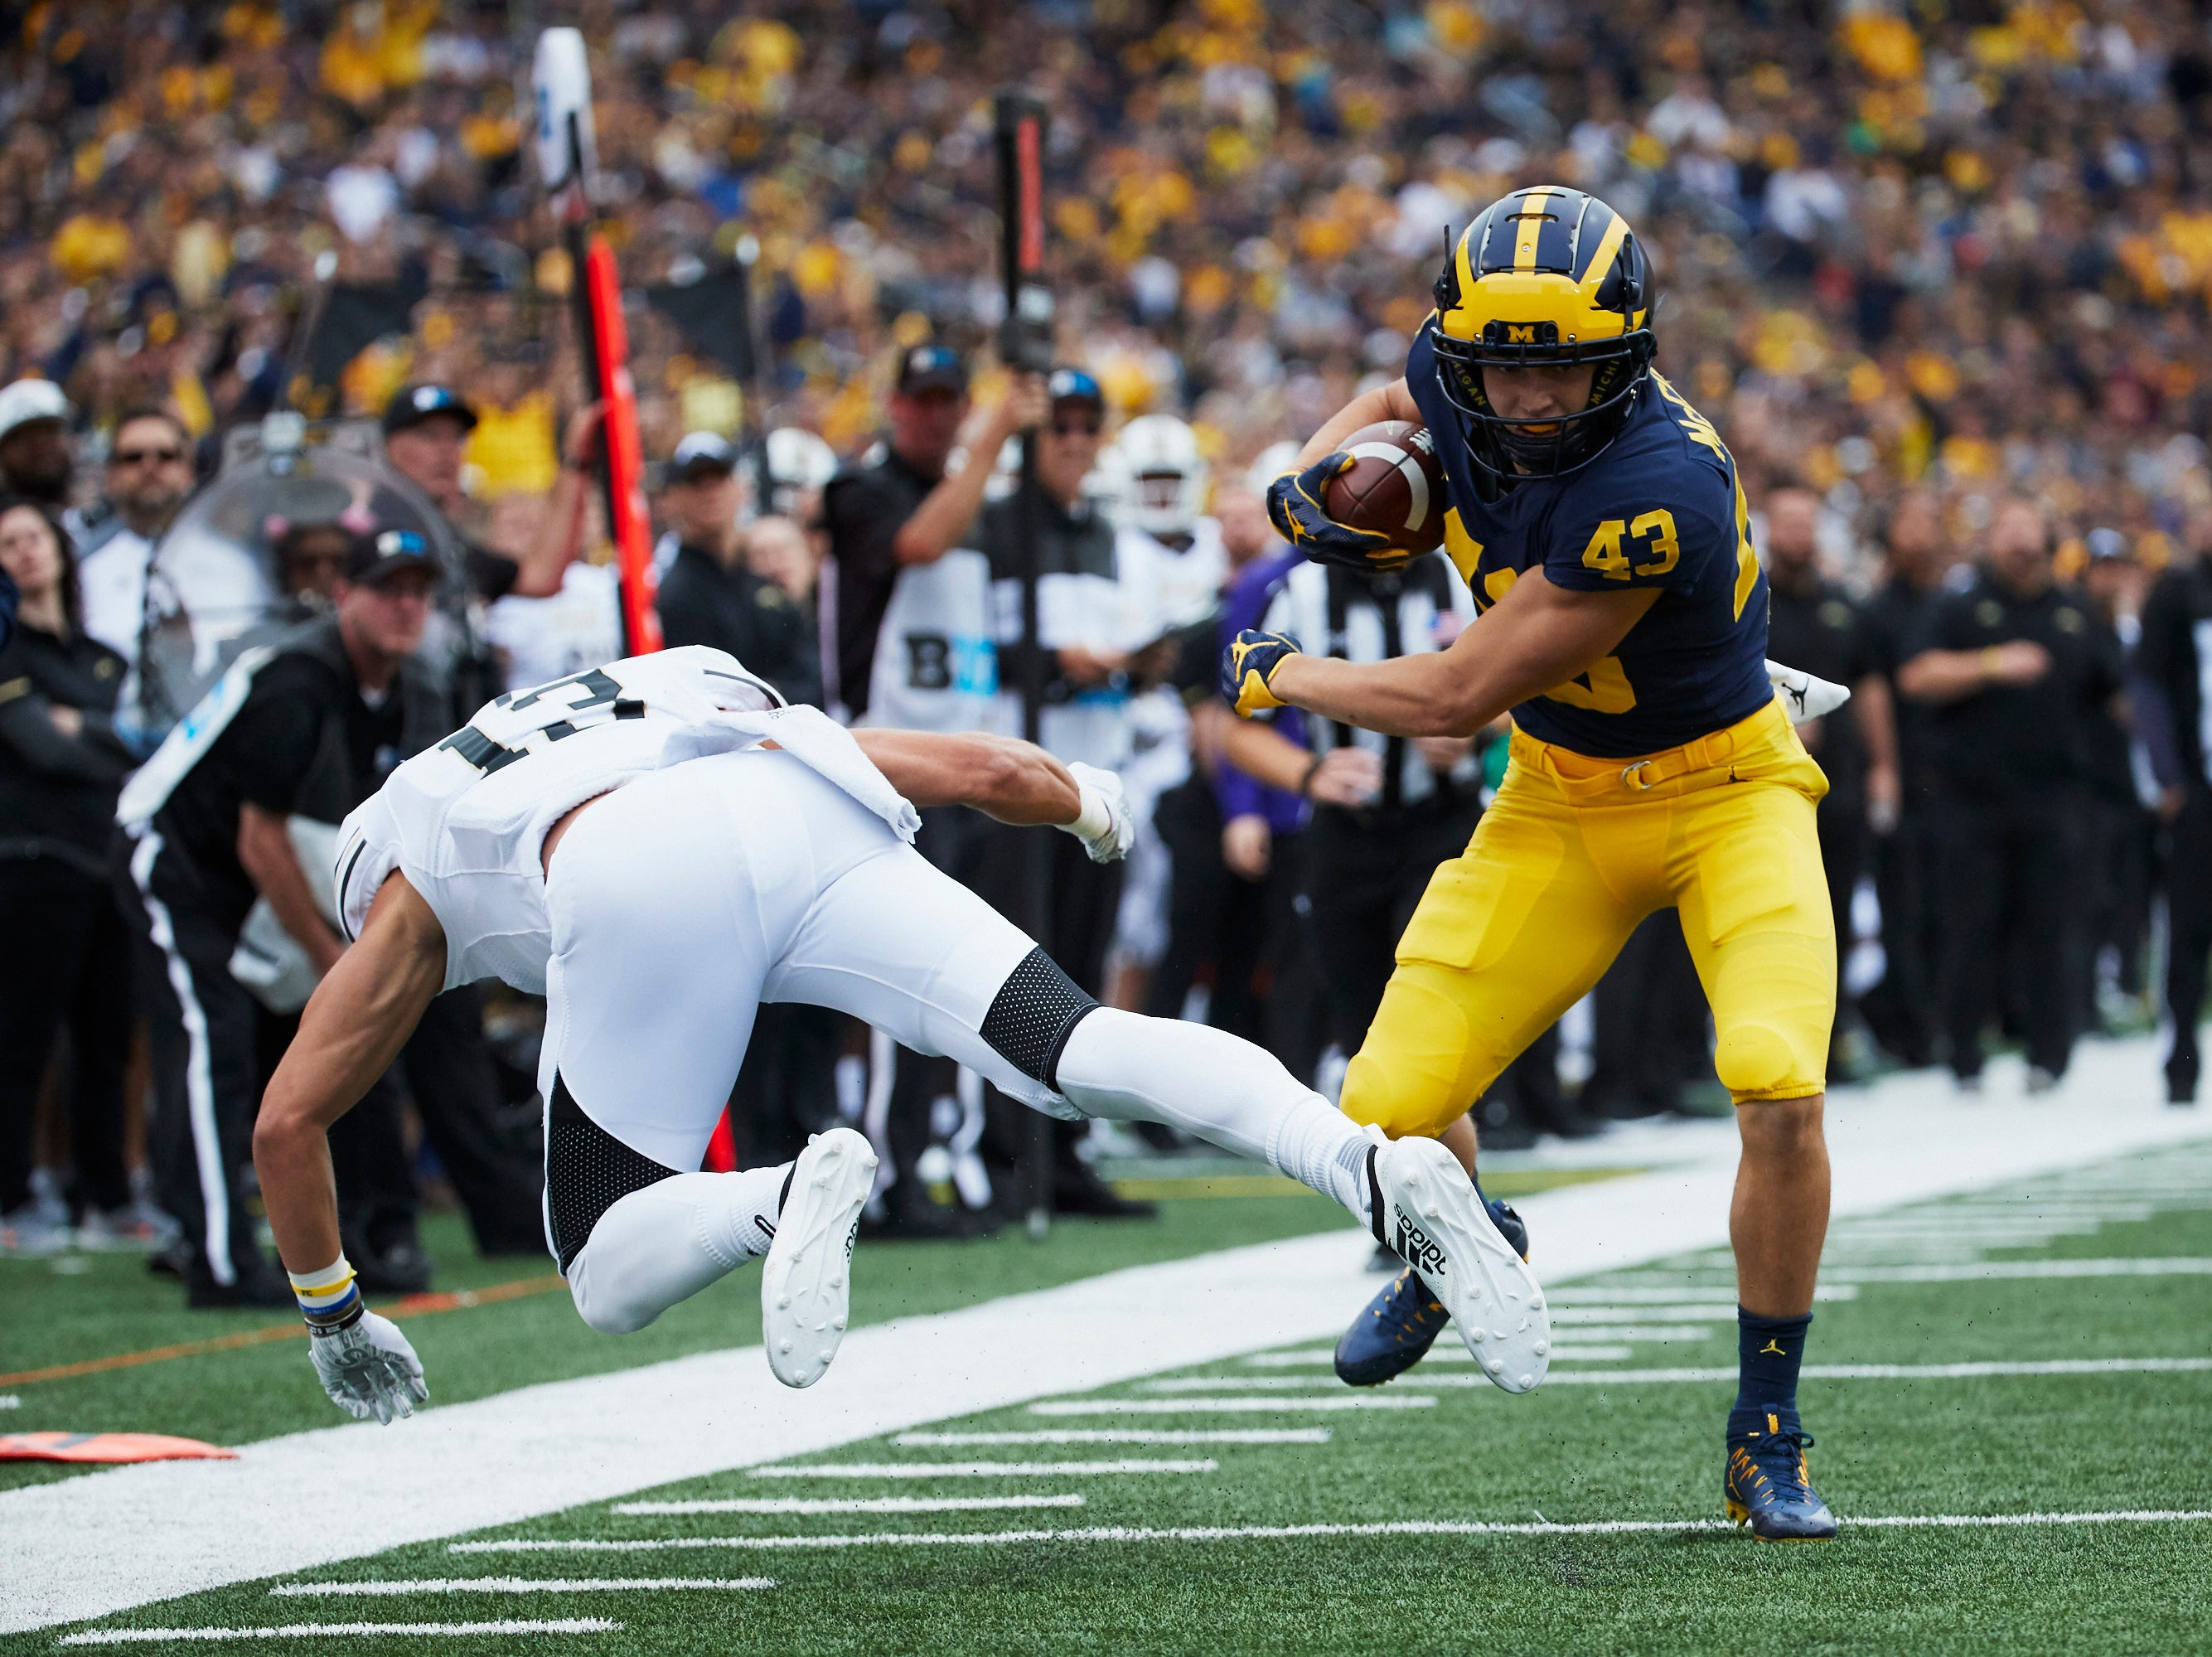 Sep 8, 2018; Ann Arbor, MI, USA; Michigan Wolverines wide receiver Jake McCurry (43) makes Western Michigan Broncos defensive back Harrison Taylor (13) miss a tackle as he runs for a touchdown in the second half at Michigan Stadium. Mandatory Credit: Rick Osentoski-USA TODAY Sports